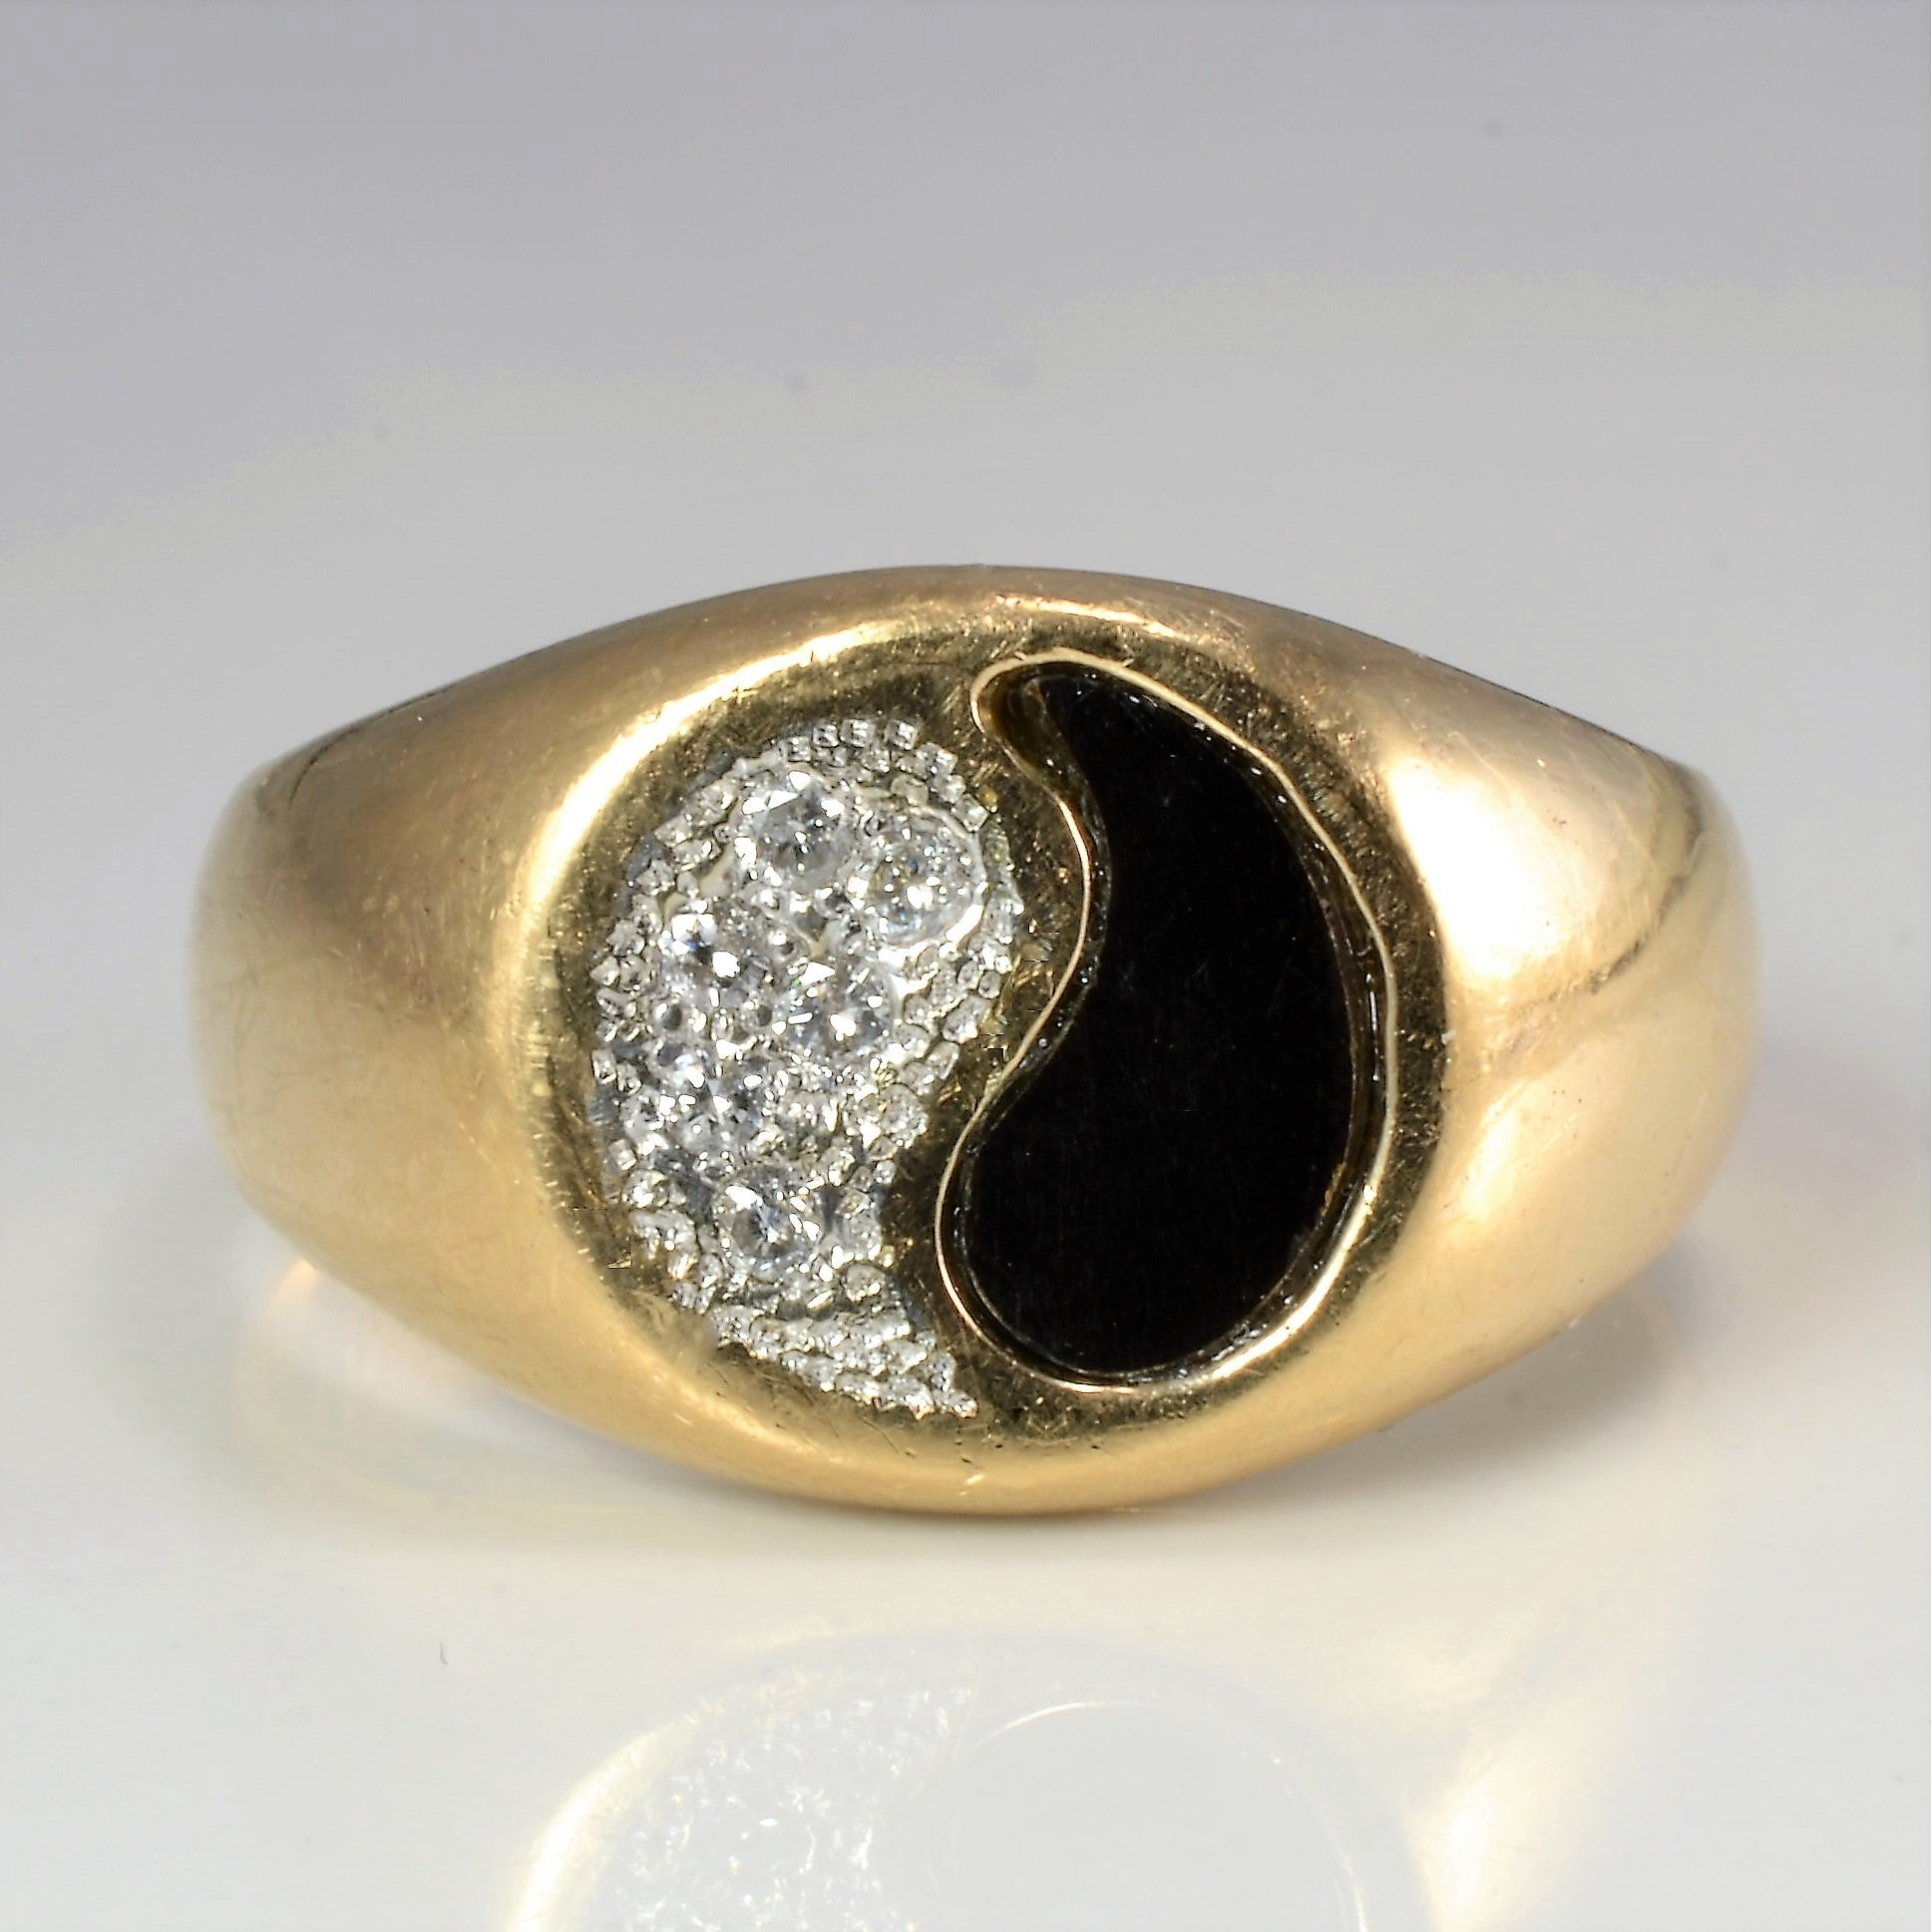 Yin Yang Cluster Diamond Heavy Ring | 0.08 ctw, SZ 10.5 |